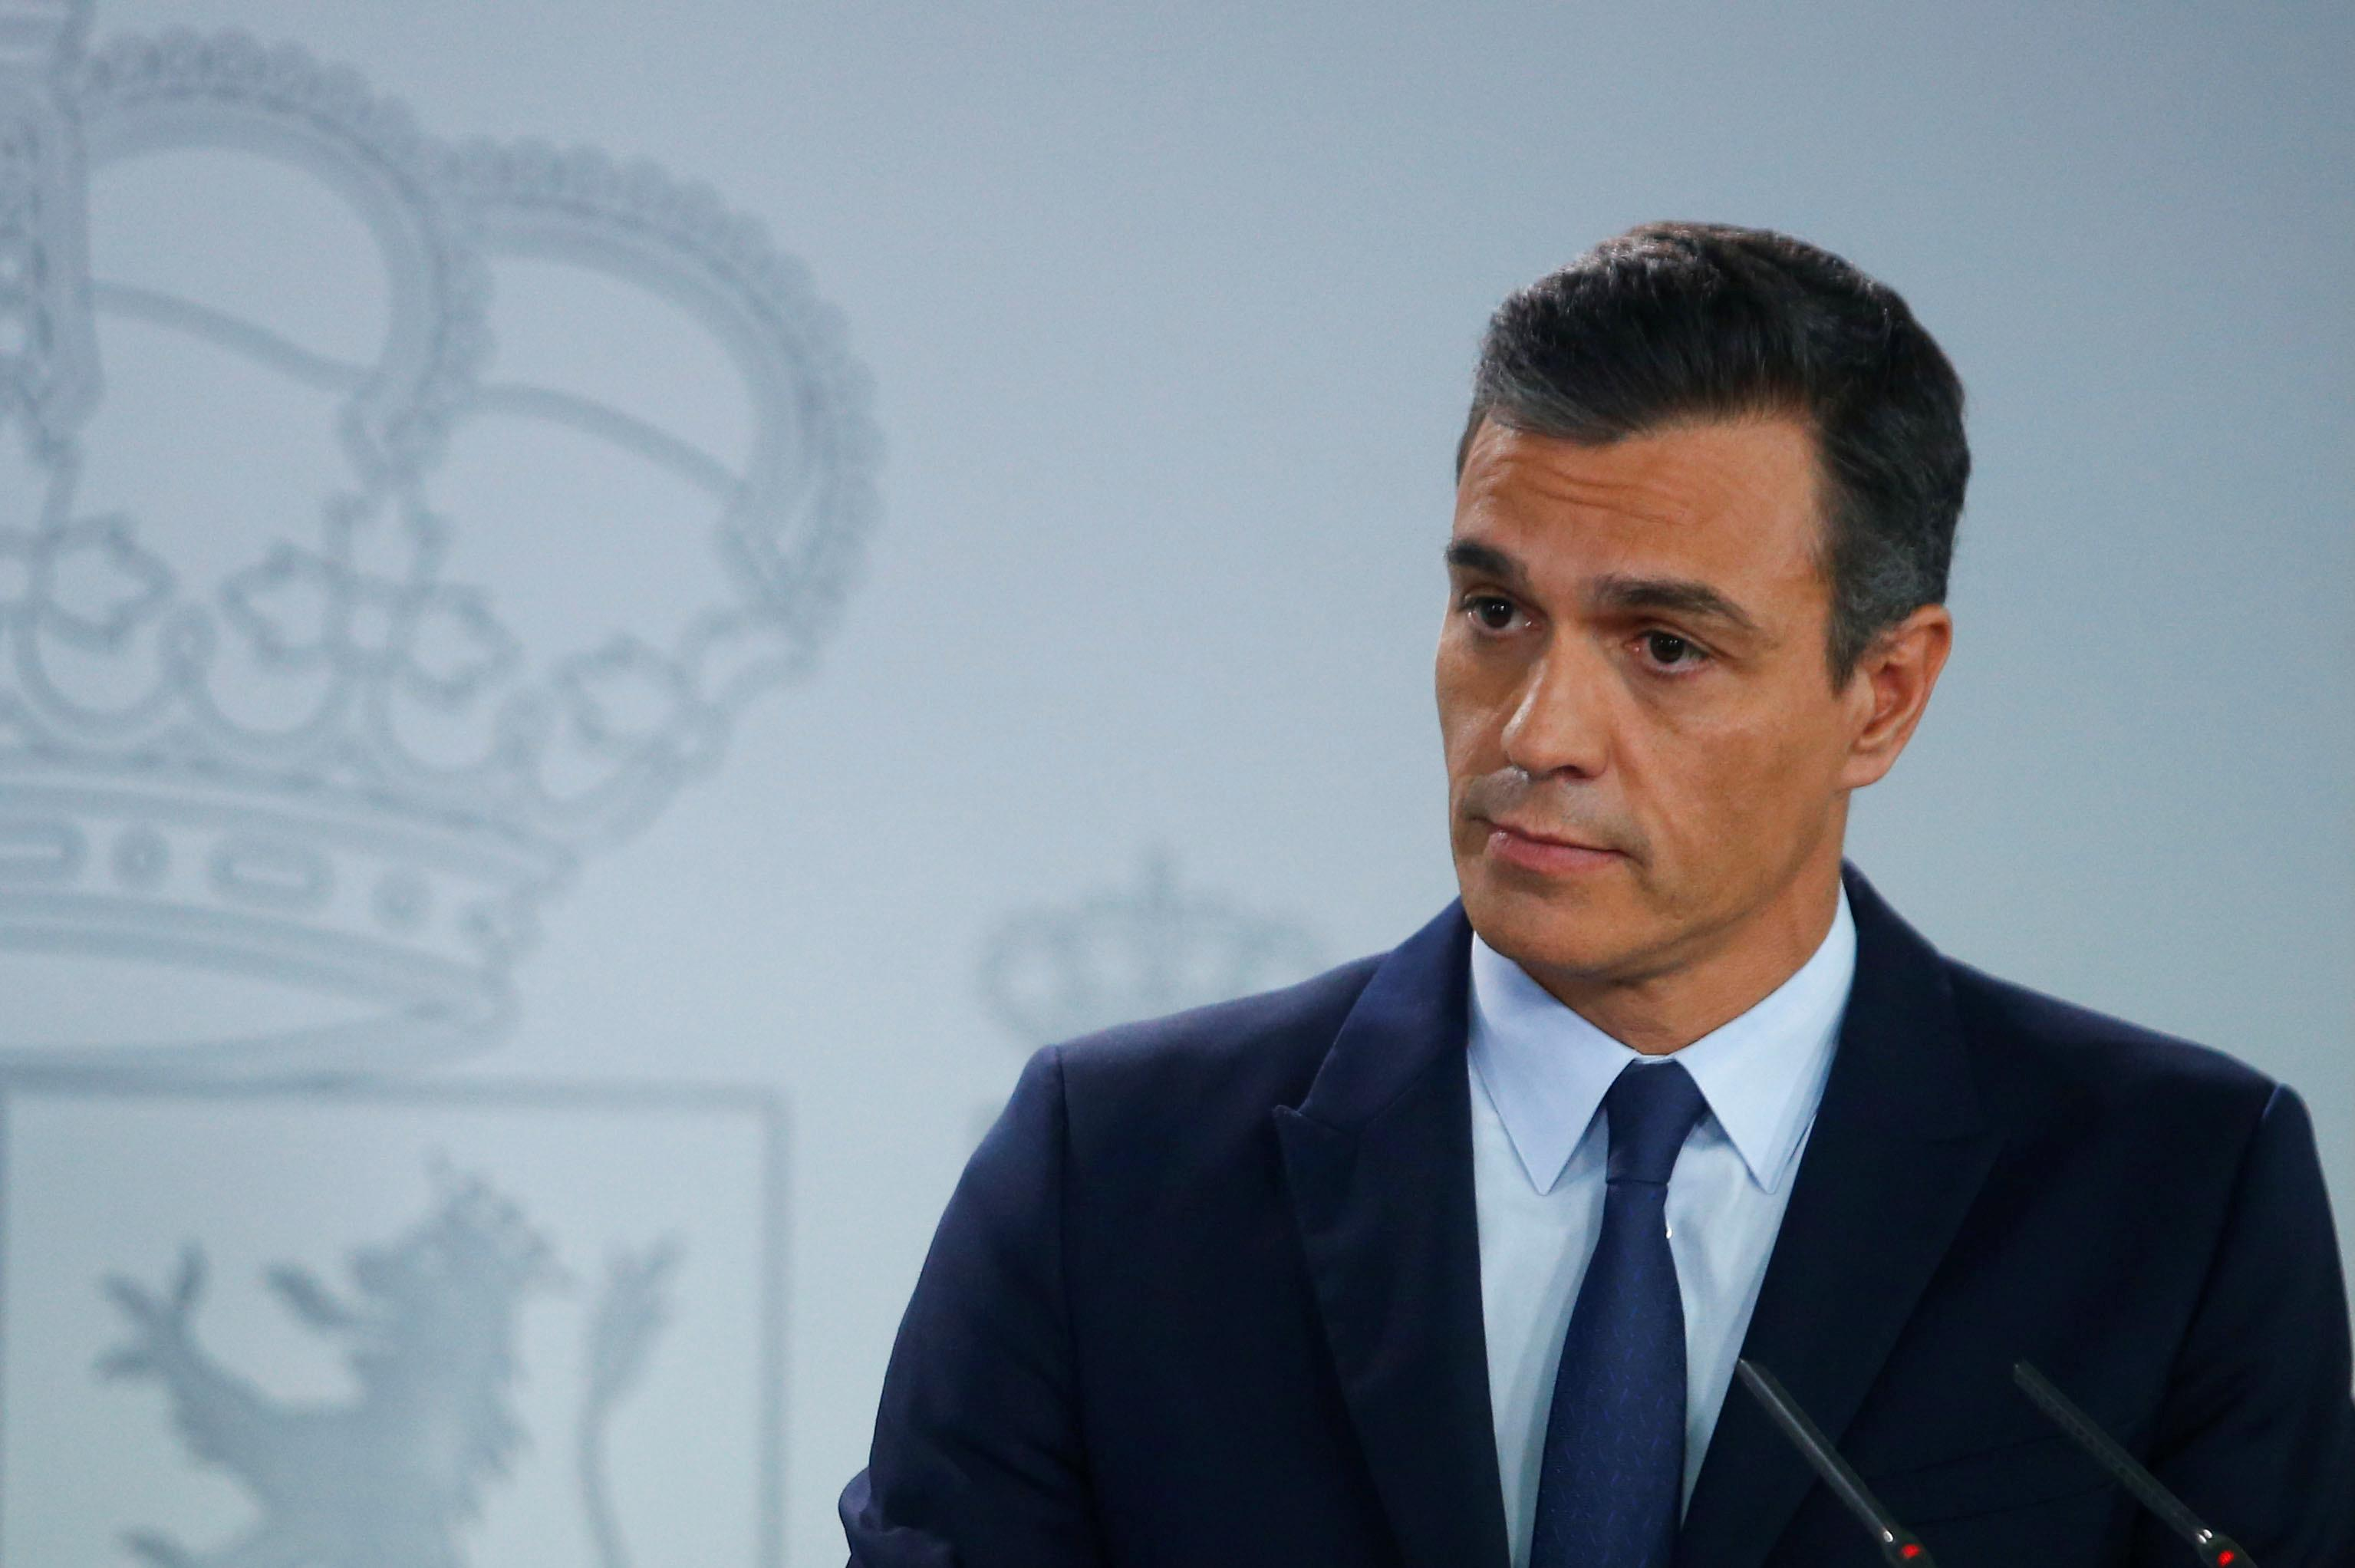 Spain's Sanchez says he will defend food sector against...